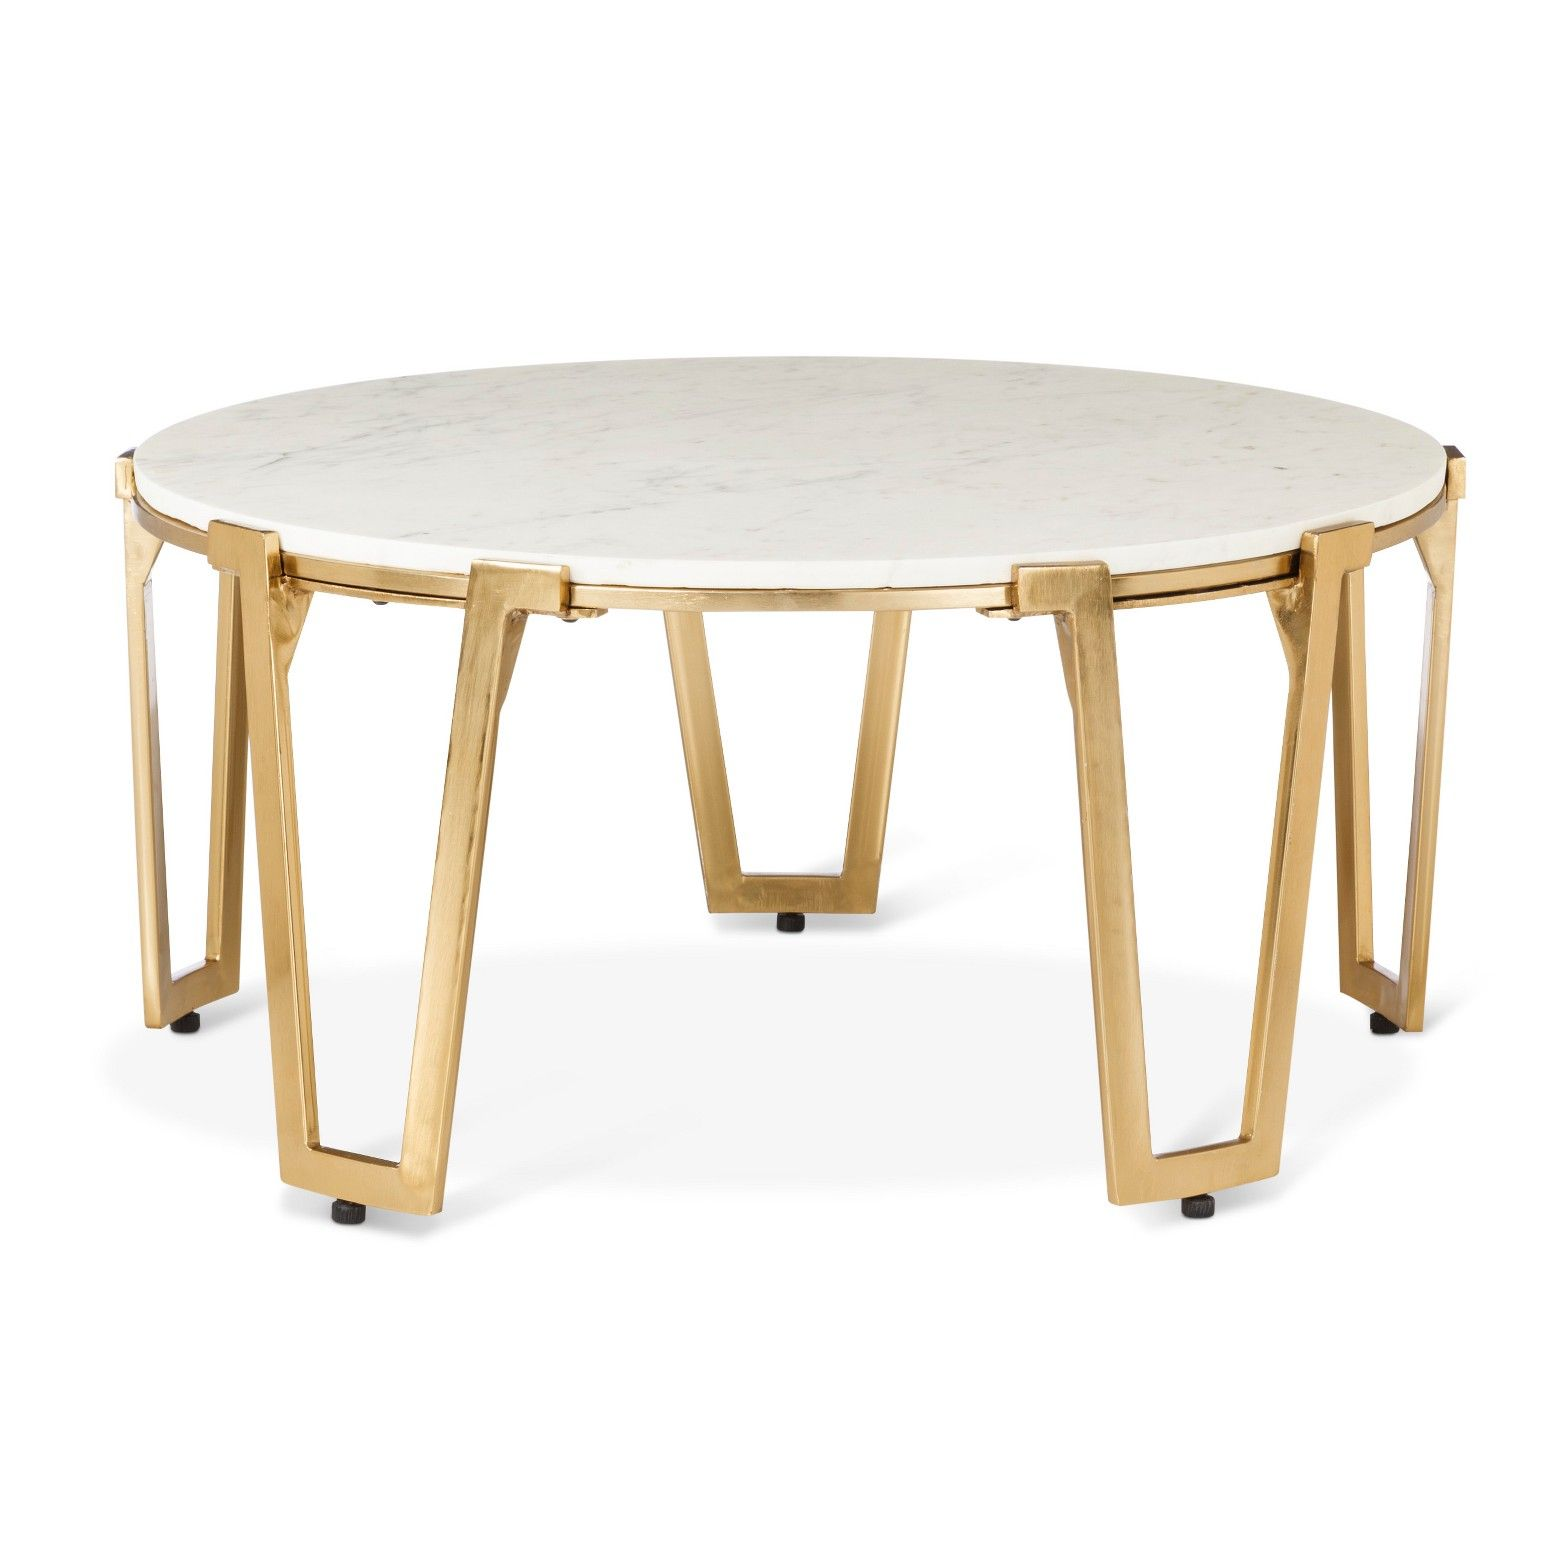 the brass and marble coffee table nate berkus has style class glass agate accent that will make stand out your living room family gold metallic finish high kitchen chairs storage